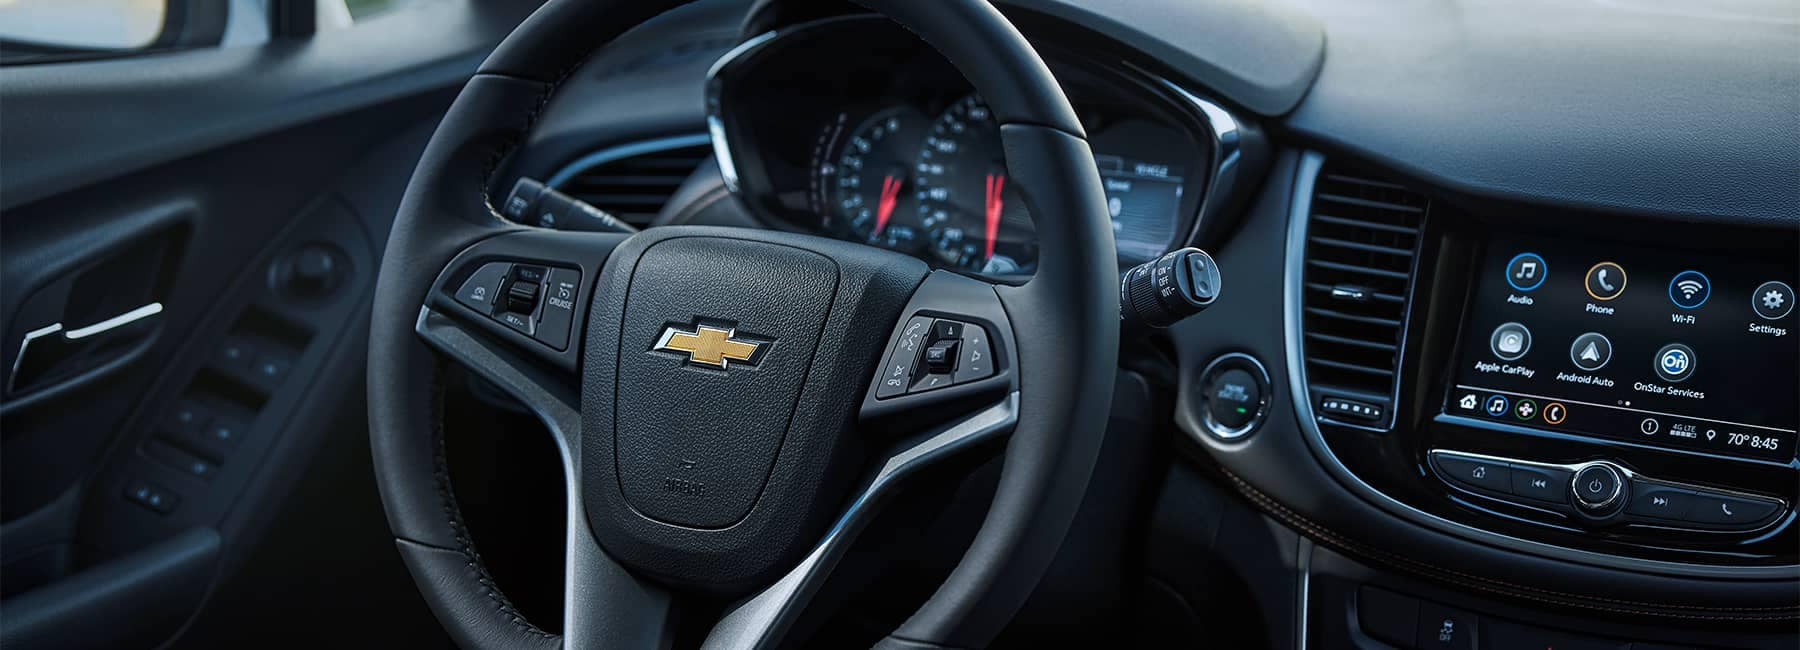 Interior dashboard of a 2021 Chevrolet Trax